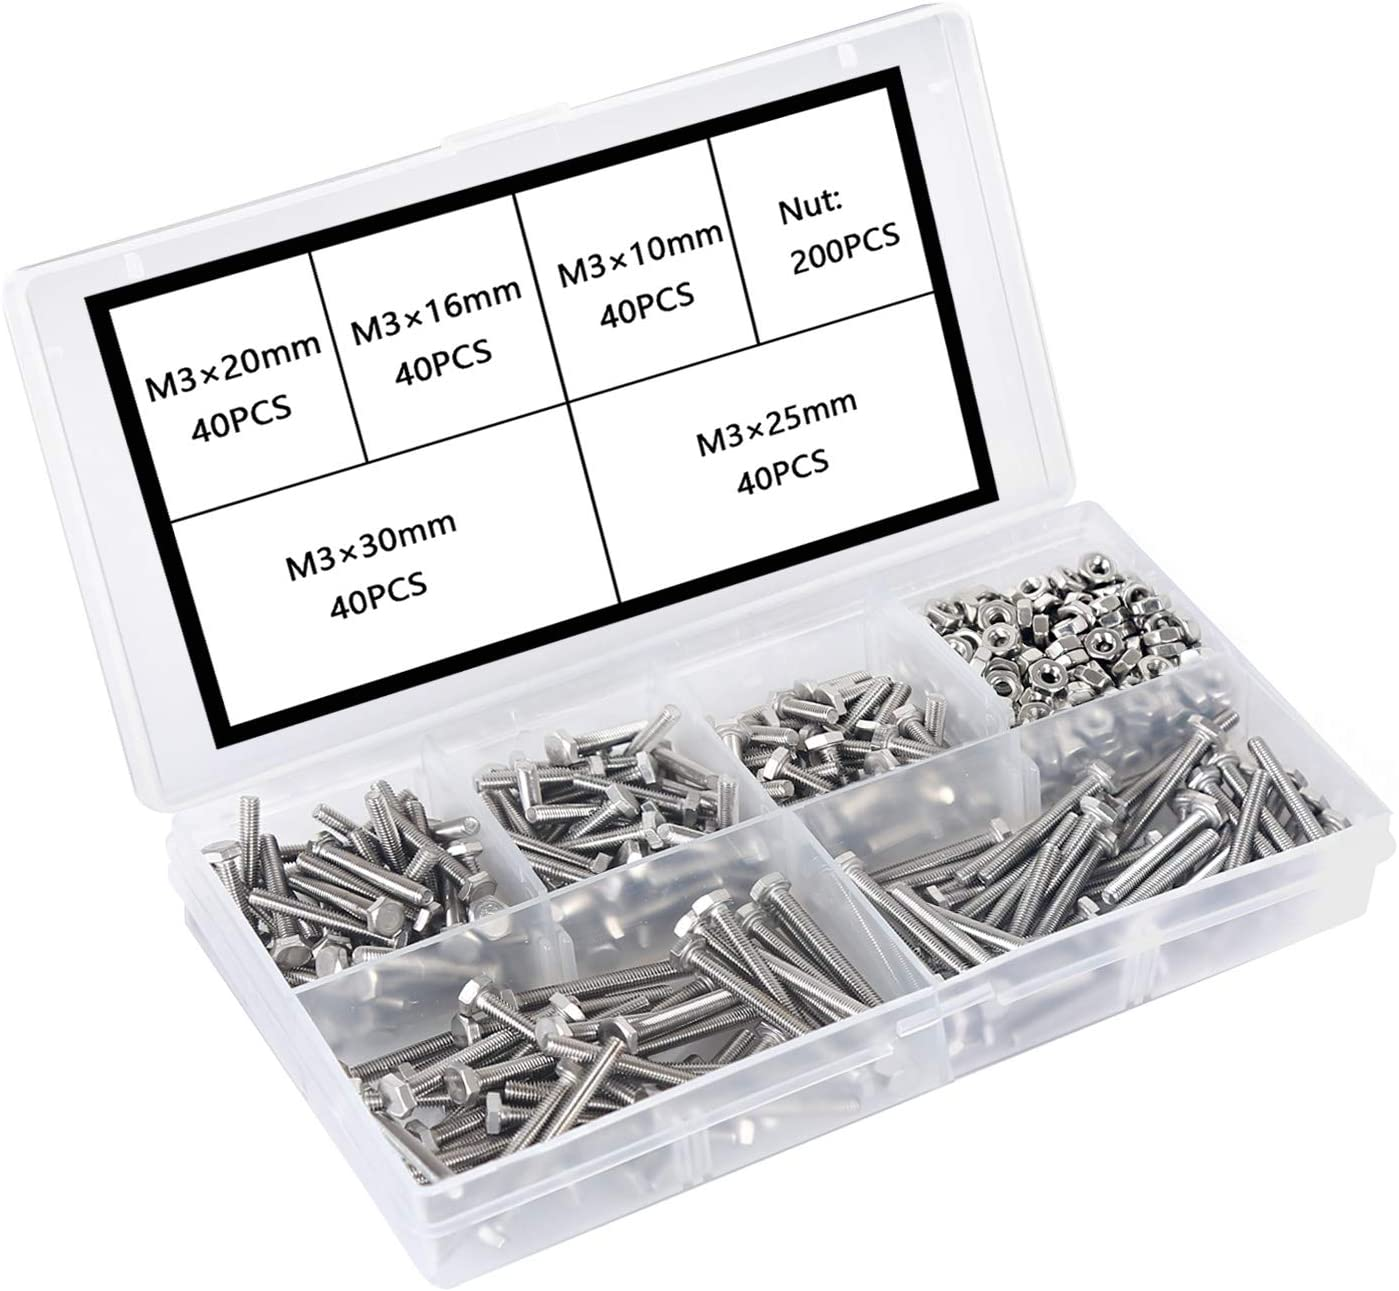 Hex Head Cap Hexagon Bolts and Nuts Assortment Set Kit with Storage Box M6 Nuts and Bolts 304 Stainless Steel Screws Assorted Metric Kit